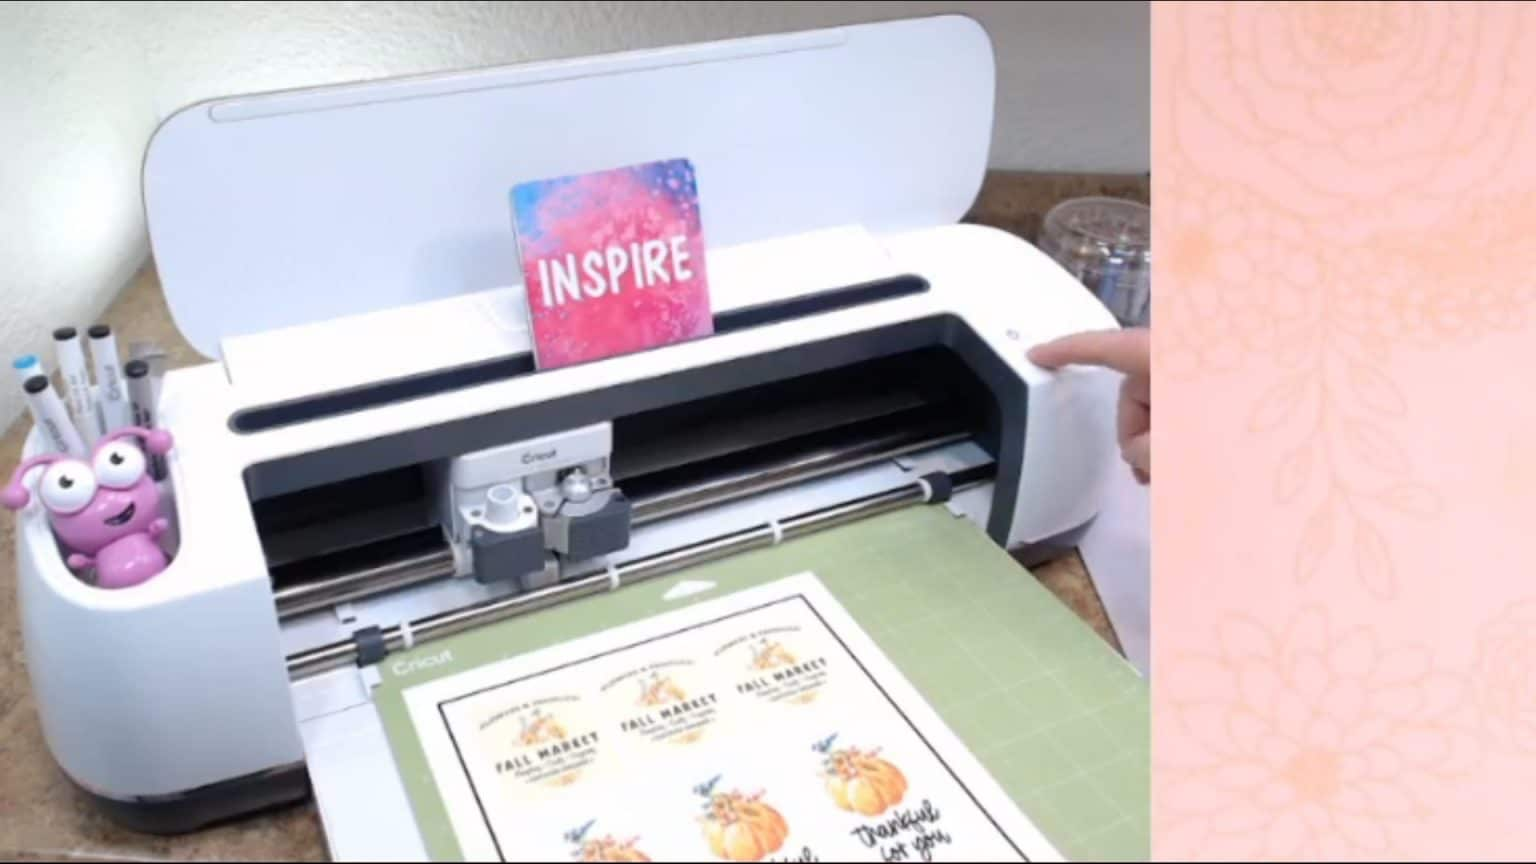 press the load button to load the Cricut mat.